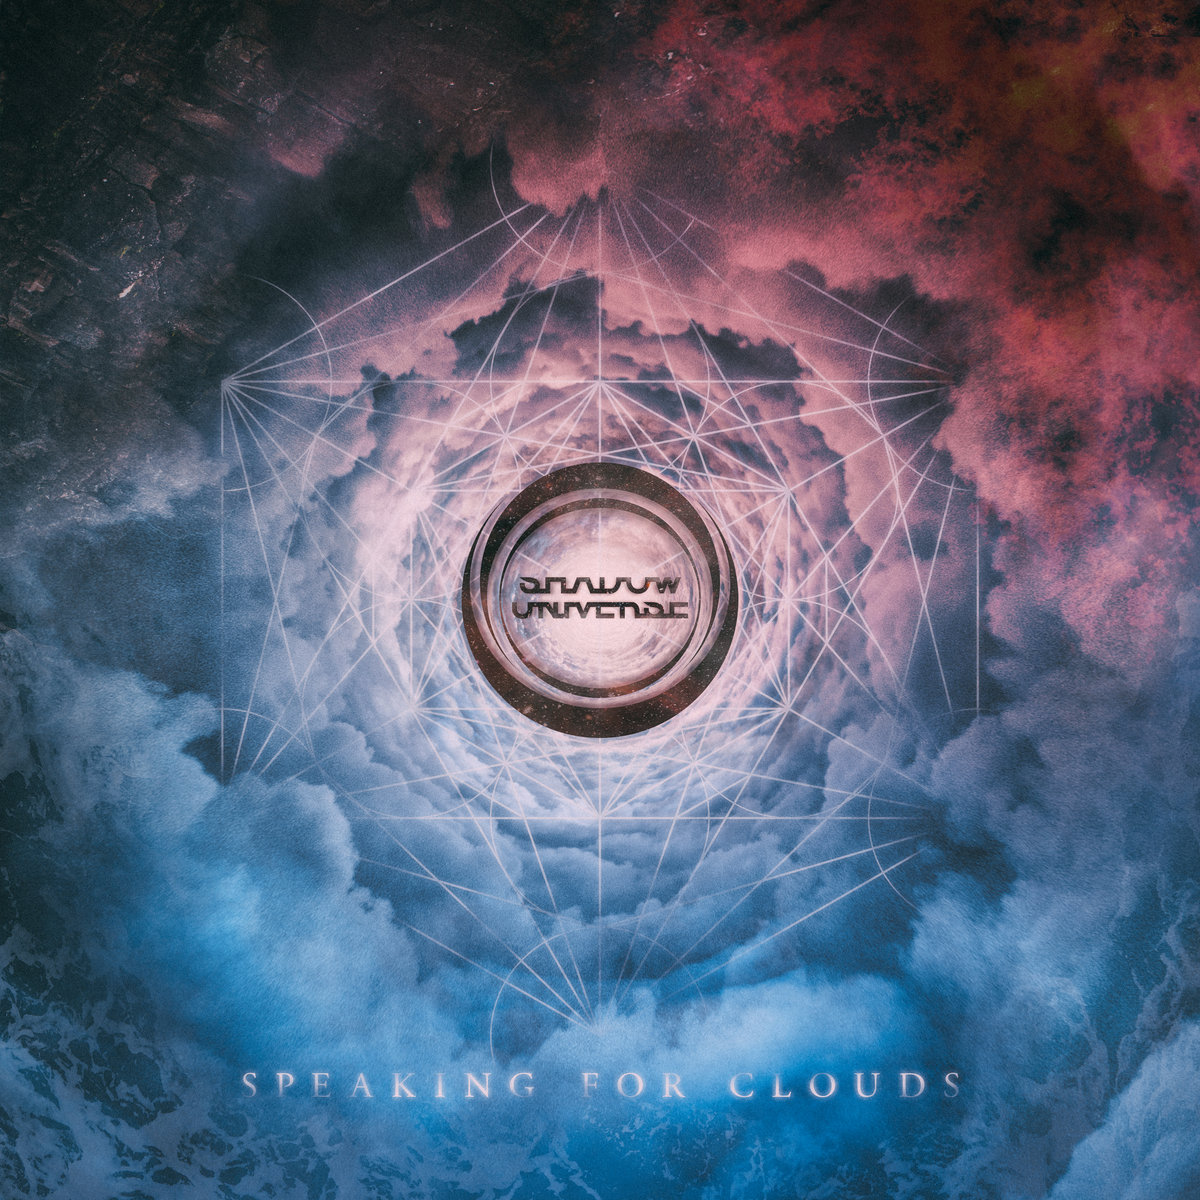 Shadow Universe: Speaking for Clouds